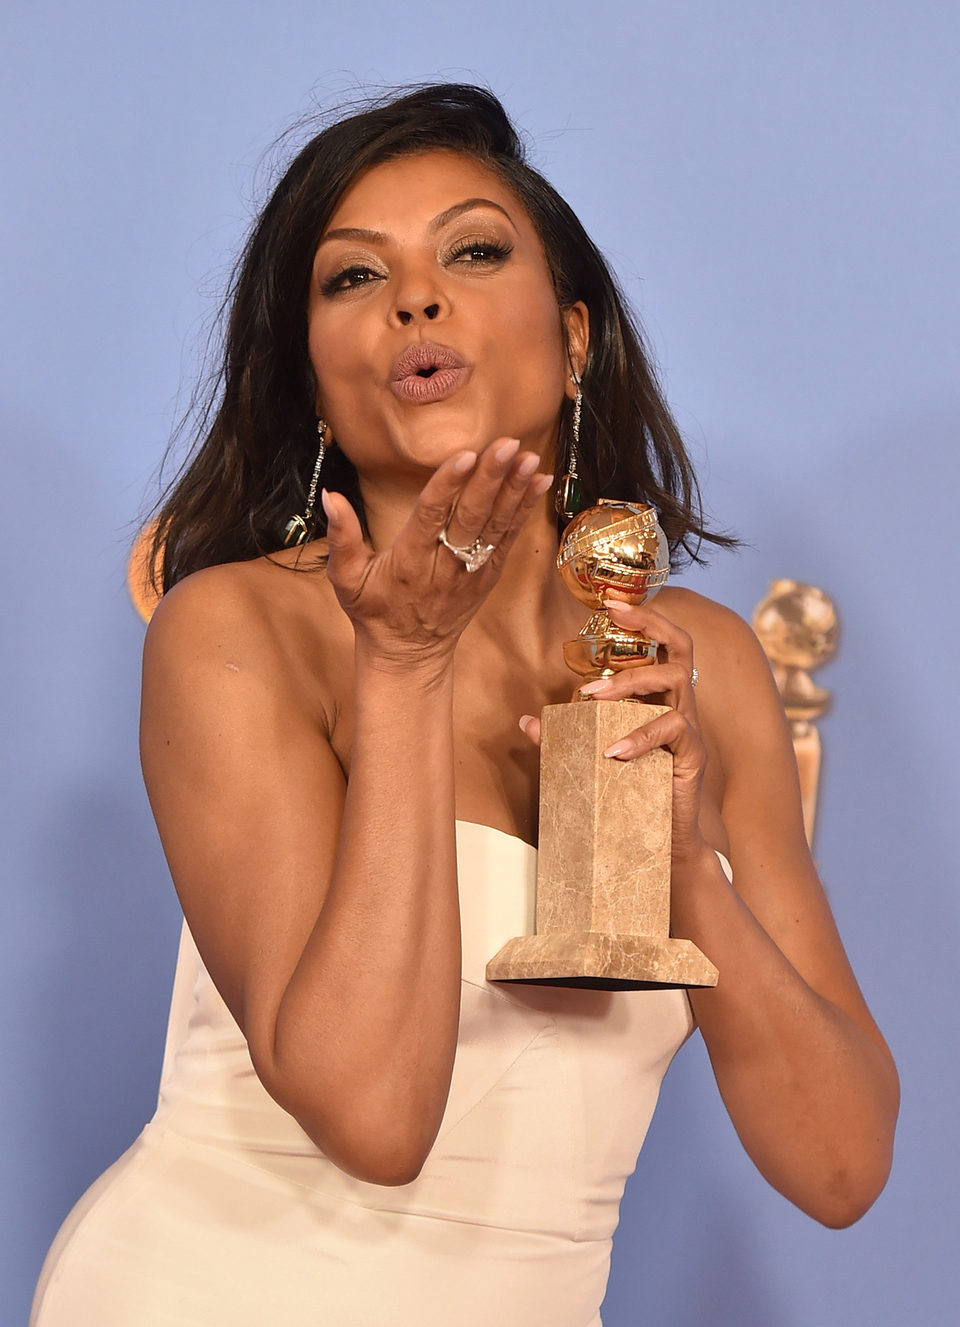 Taraji P. Henson wins the Golden Globe for 'Empire'